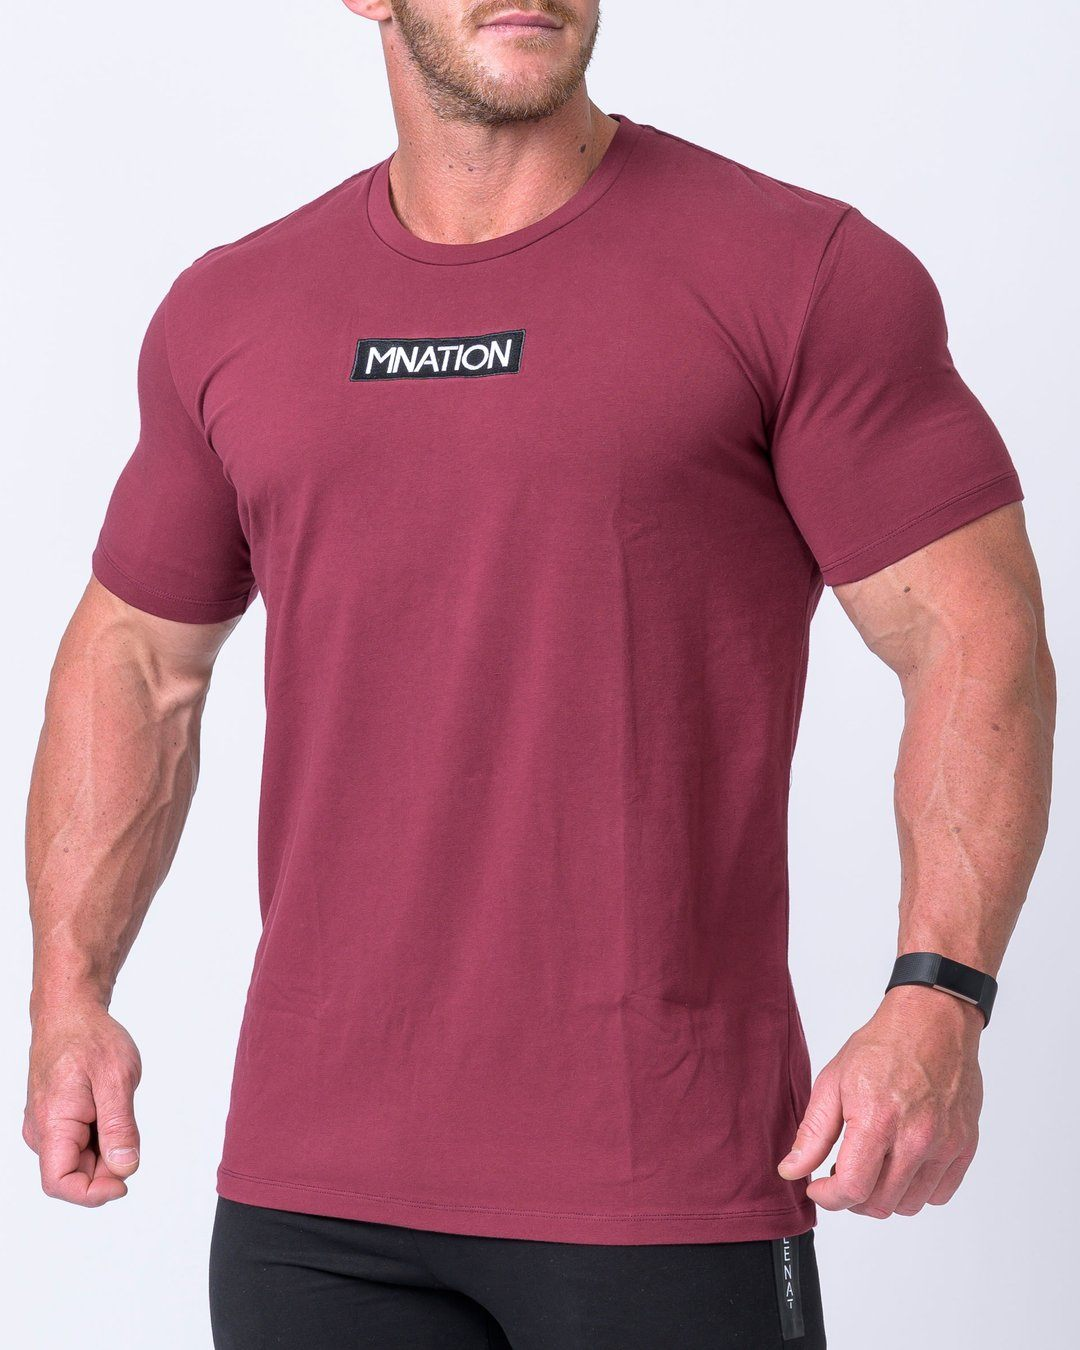 Muscle Nation Embroidery Tee- Burgundy